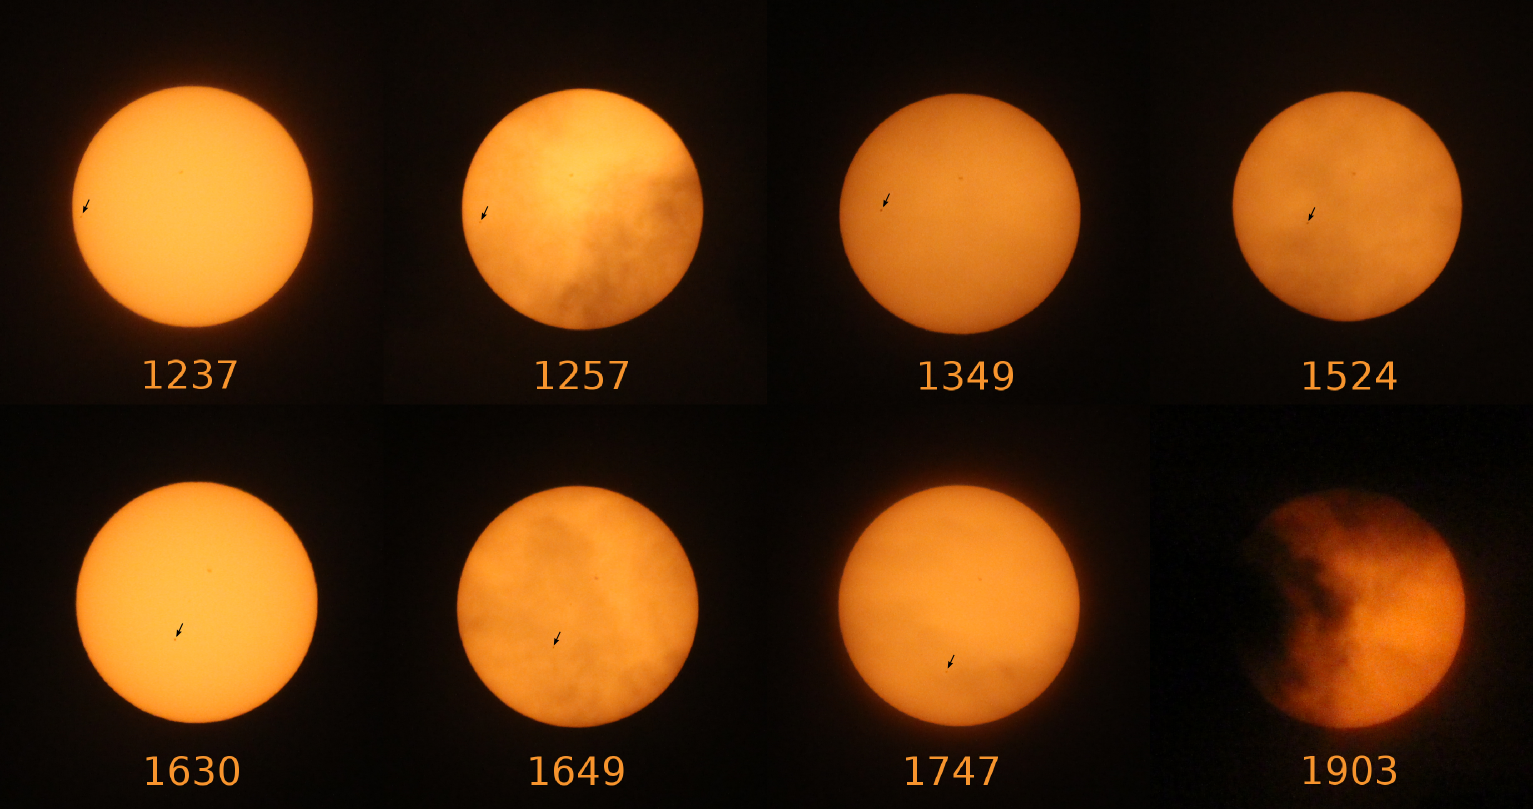 Transit of Mercury across the Sun in 2016. Image credit: Hannah Middleton